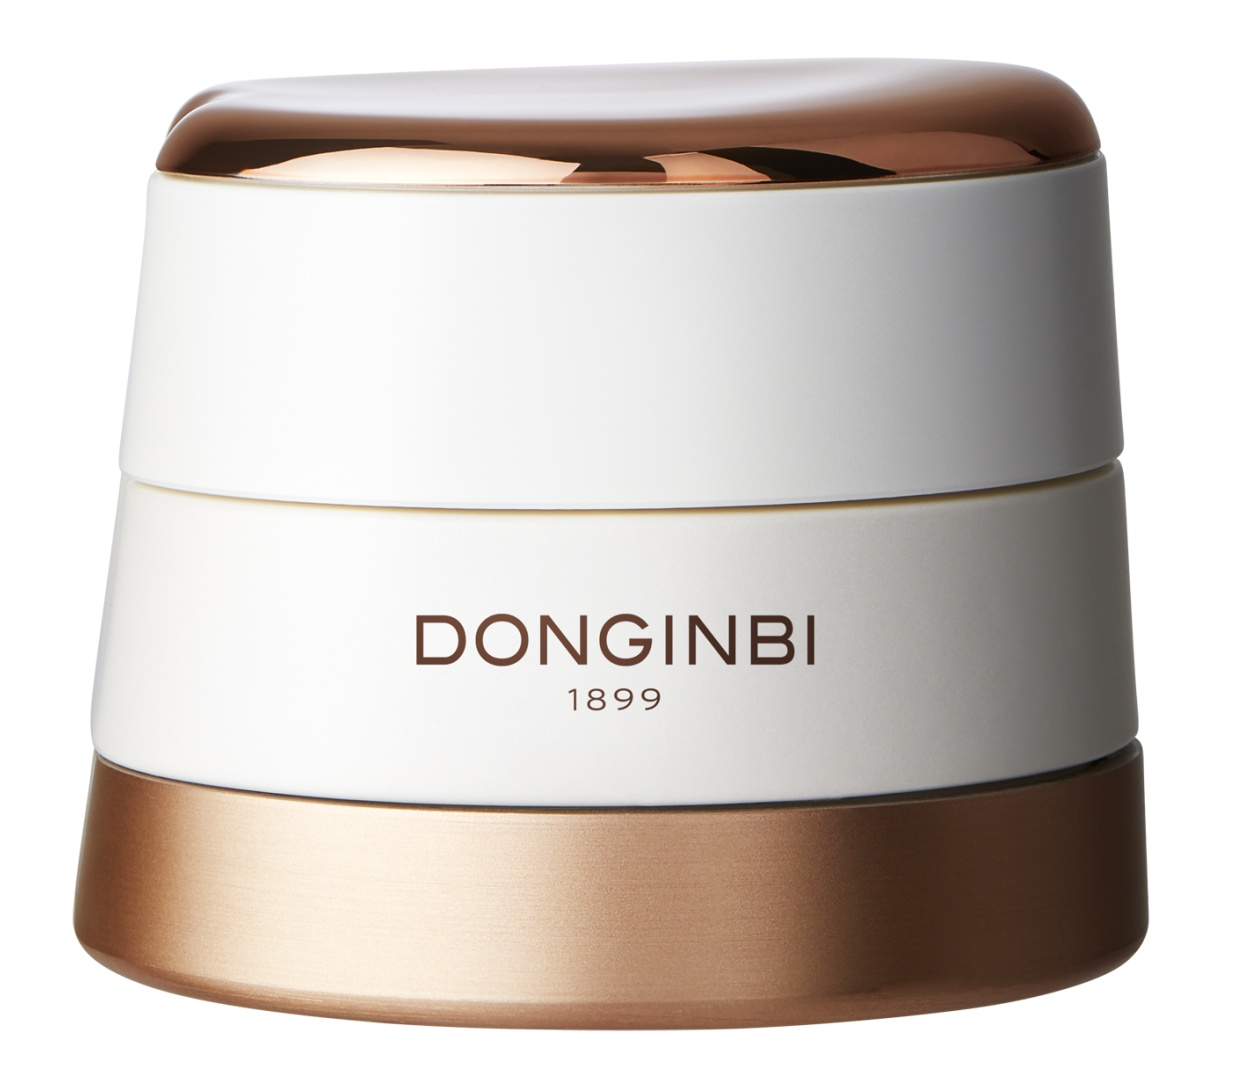 Donginbi Red Ginseng Power Repair Cream